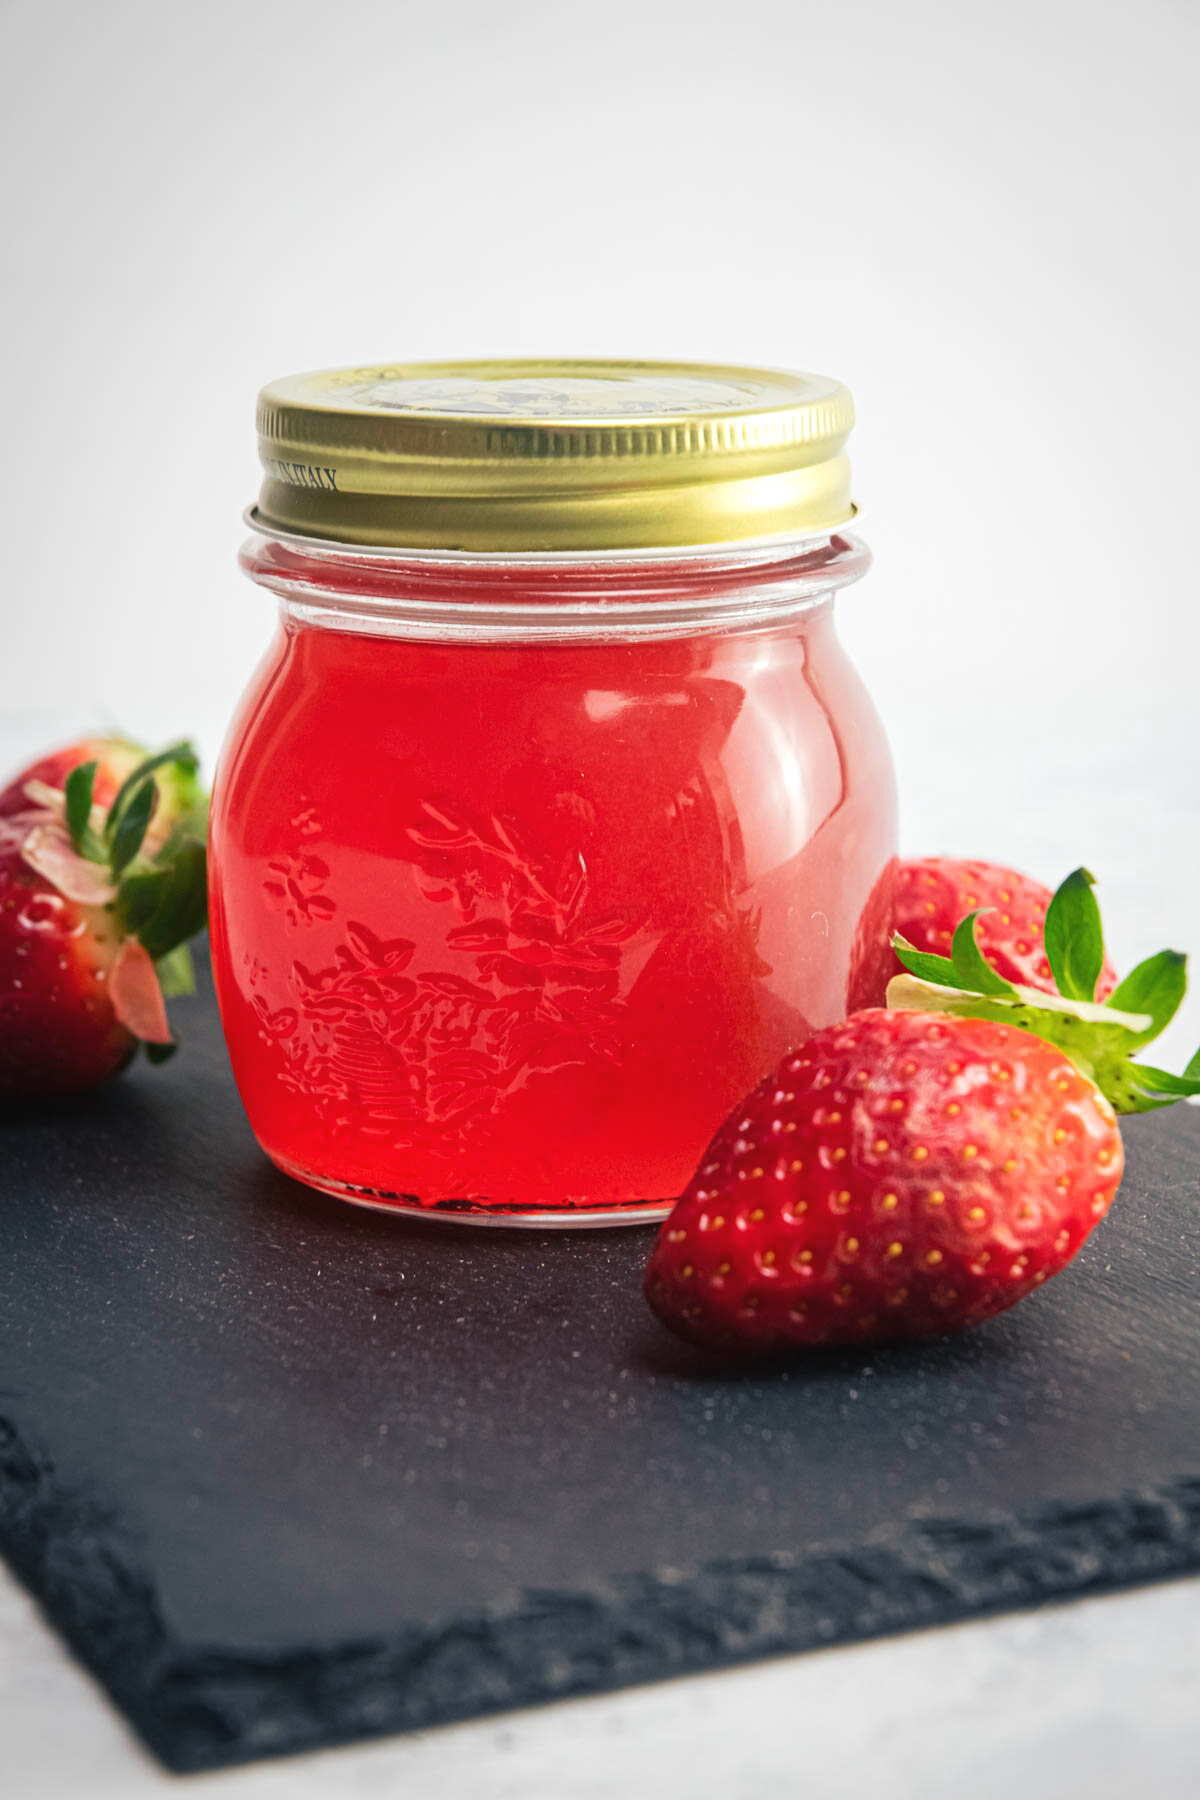 Strawberry liqueur in a jar, fresh strawberries on the side.